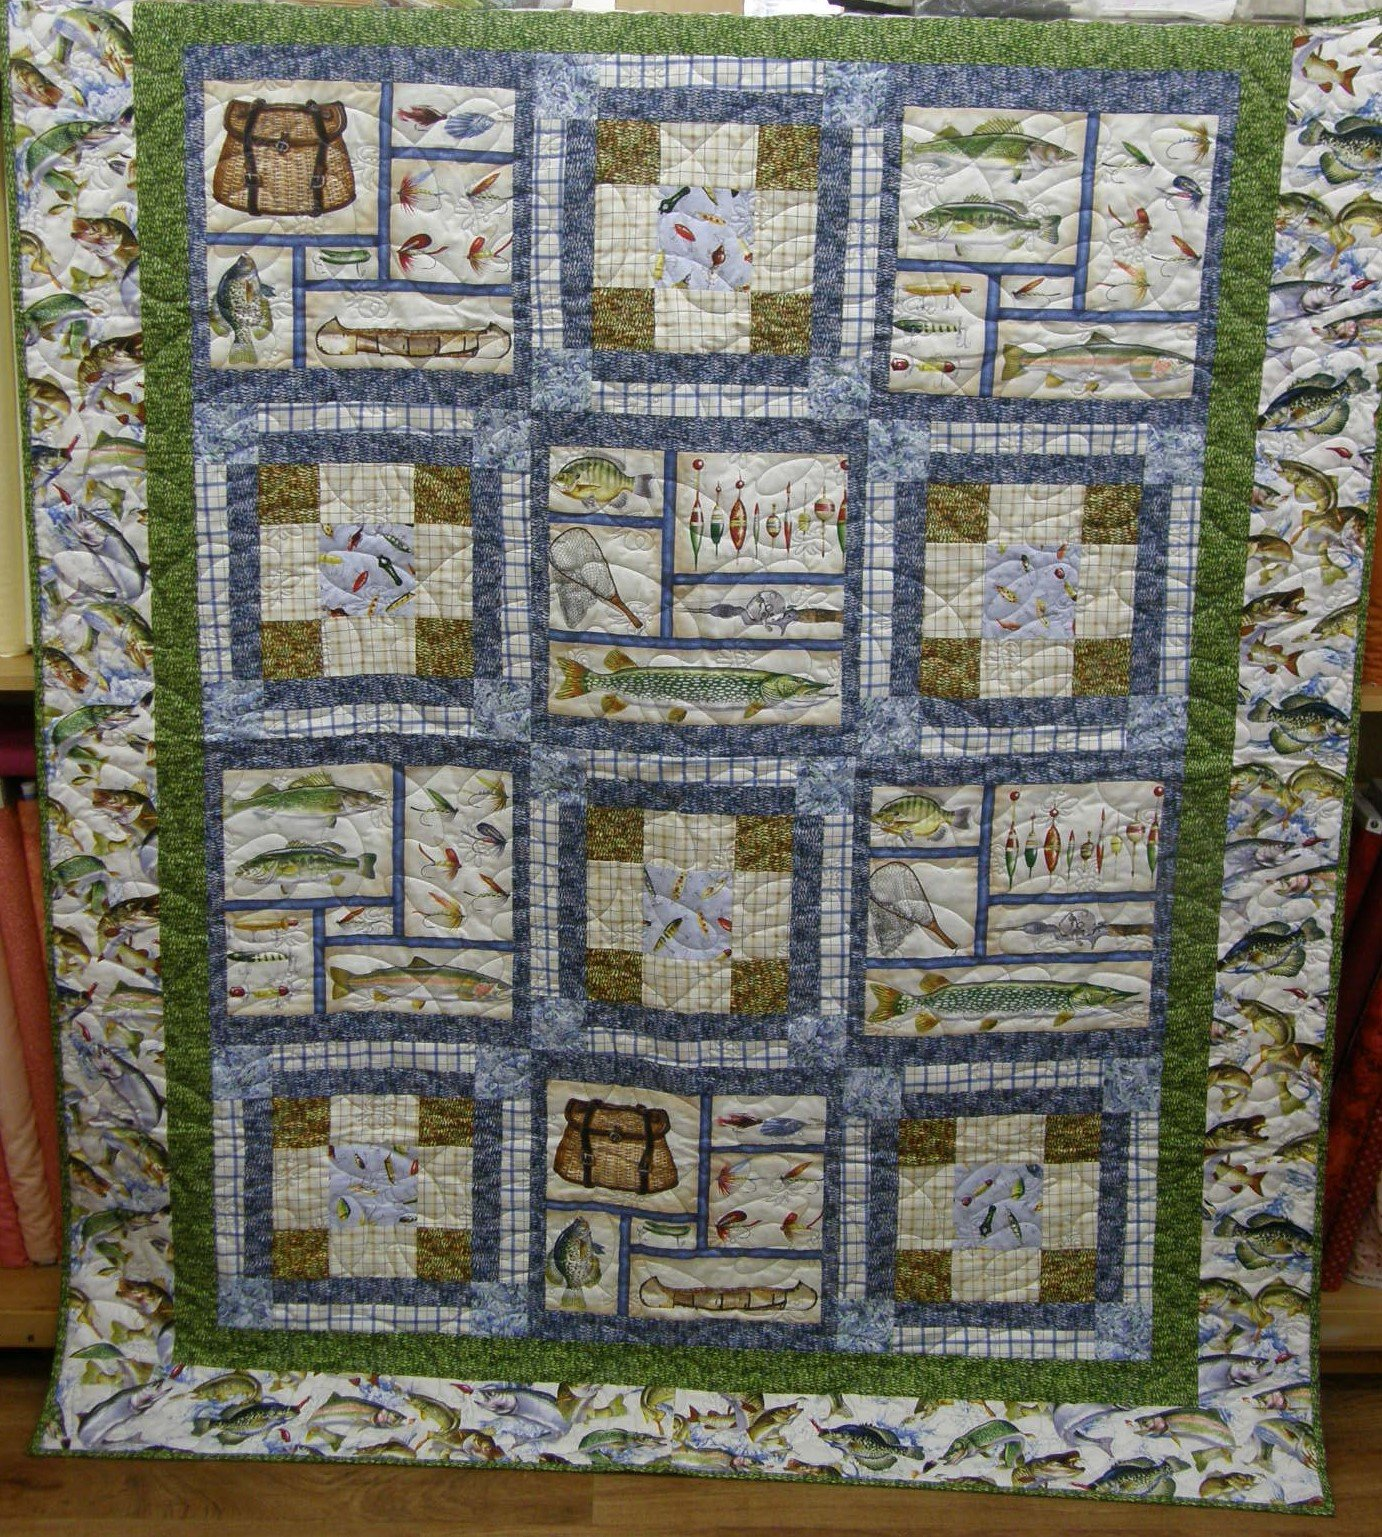 Reel It In Finished Lap quilt